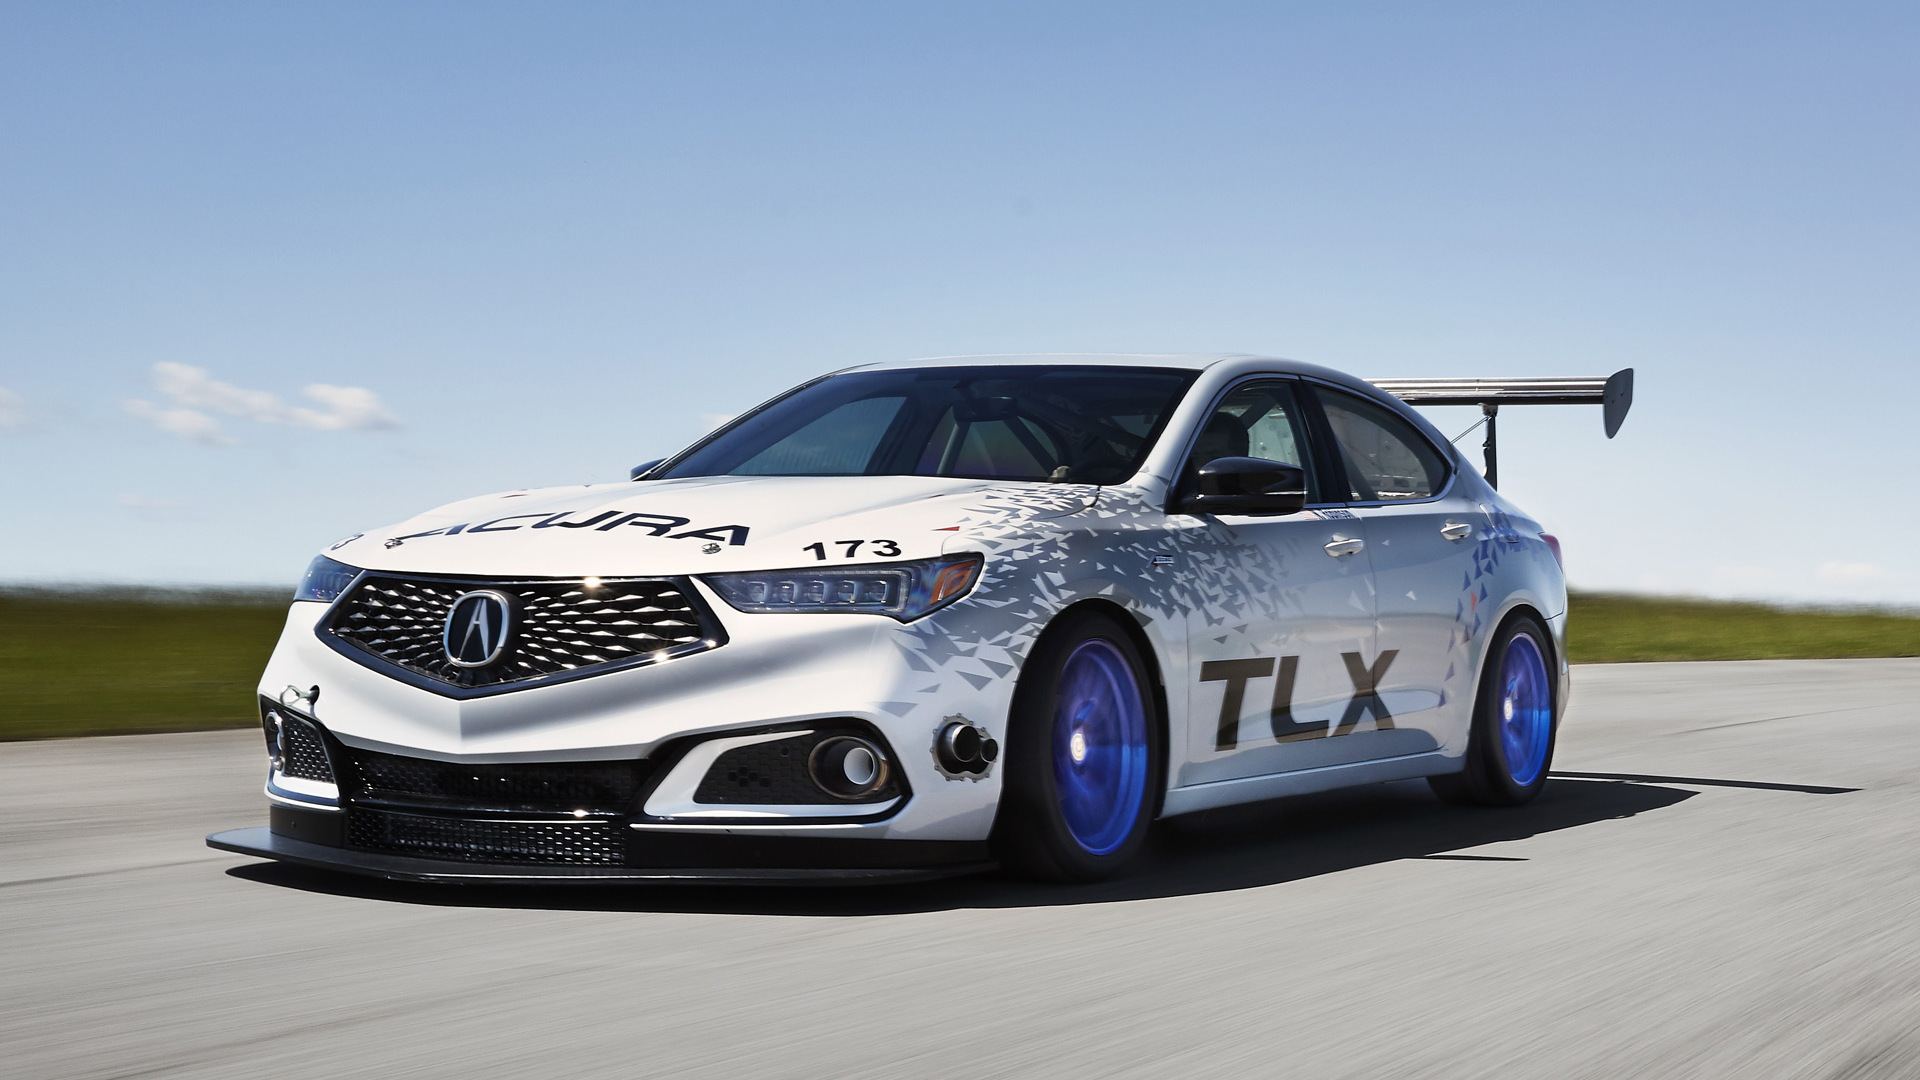 2017 Acura TLX A-Spec race car set for 2017 Pikes Peak International Hill Climb